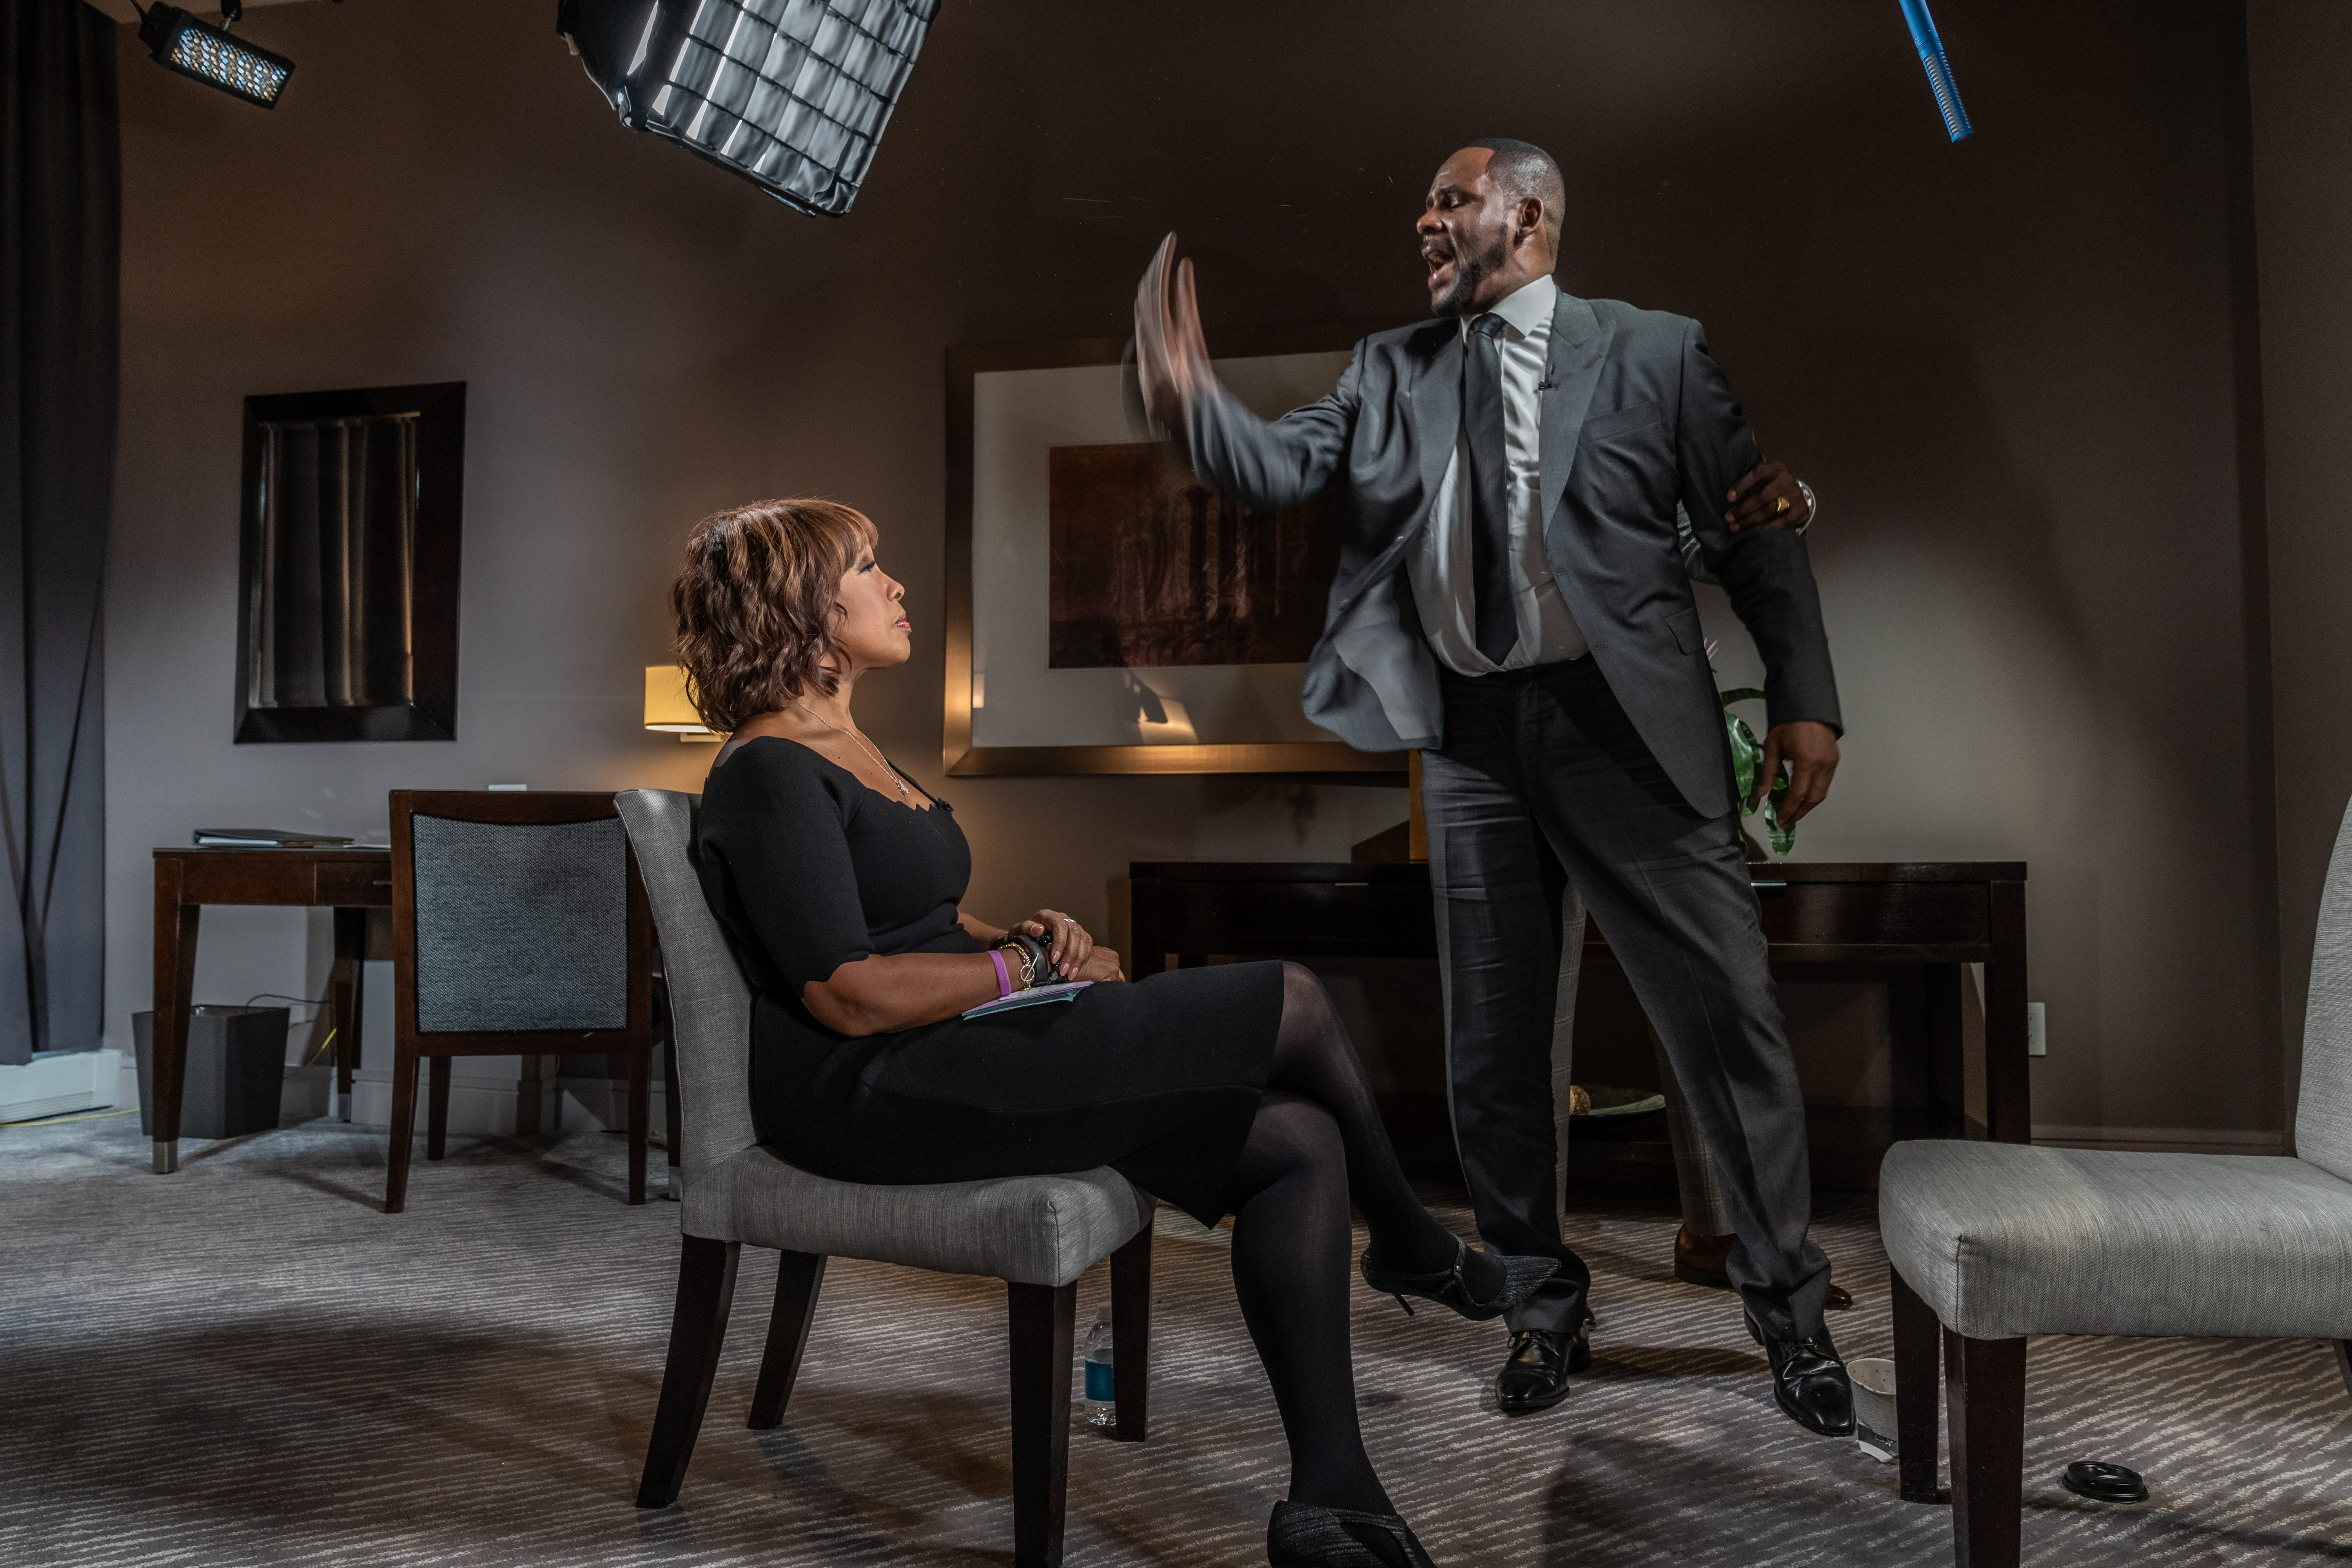 CBS THIS MORNING co-host Gayle King sat down with R&B singer R. Kelly Tuesday in Chicago for his first television interview since he was arrested on 10 sexual abuse charges.